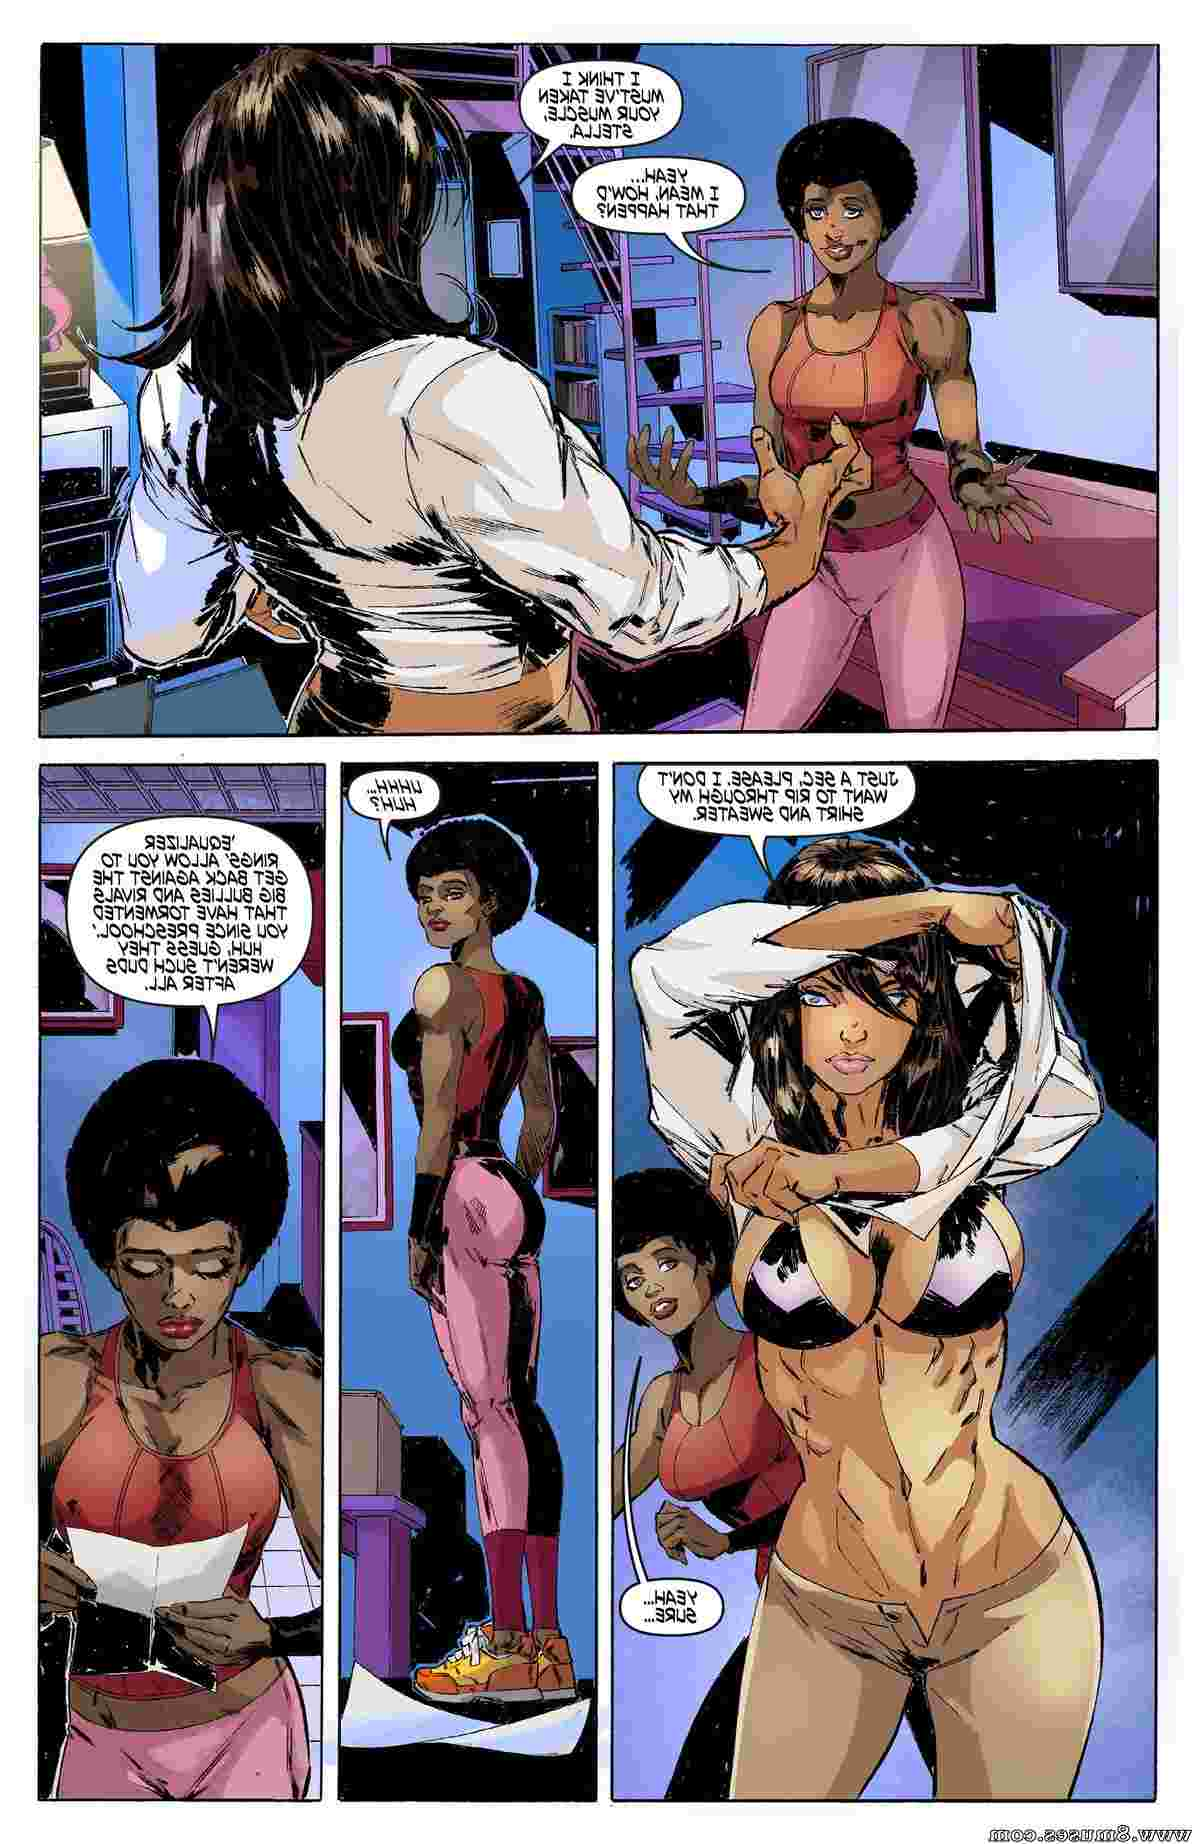 MuscleFan-Comics/Leveling-The-Field Leveling_The_Field__8muses_-_Sex_and_Porn_Comics_8.jpg